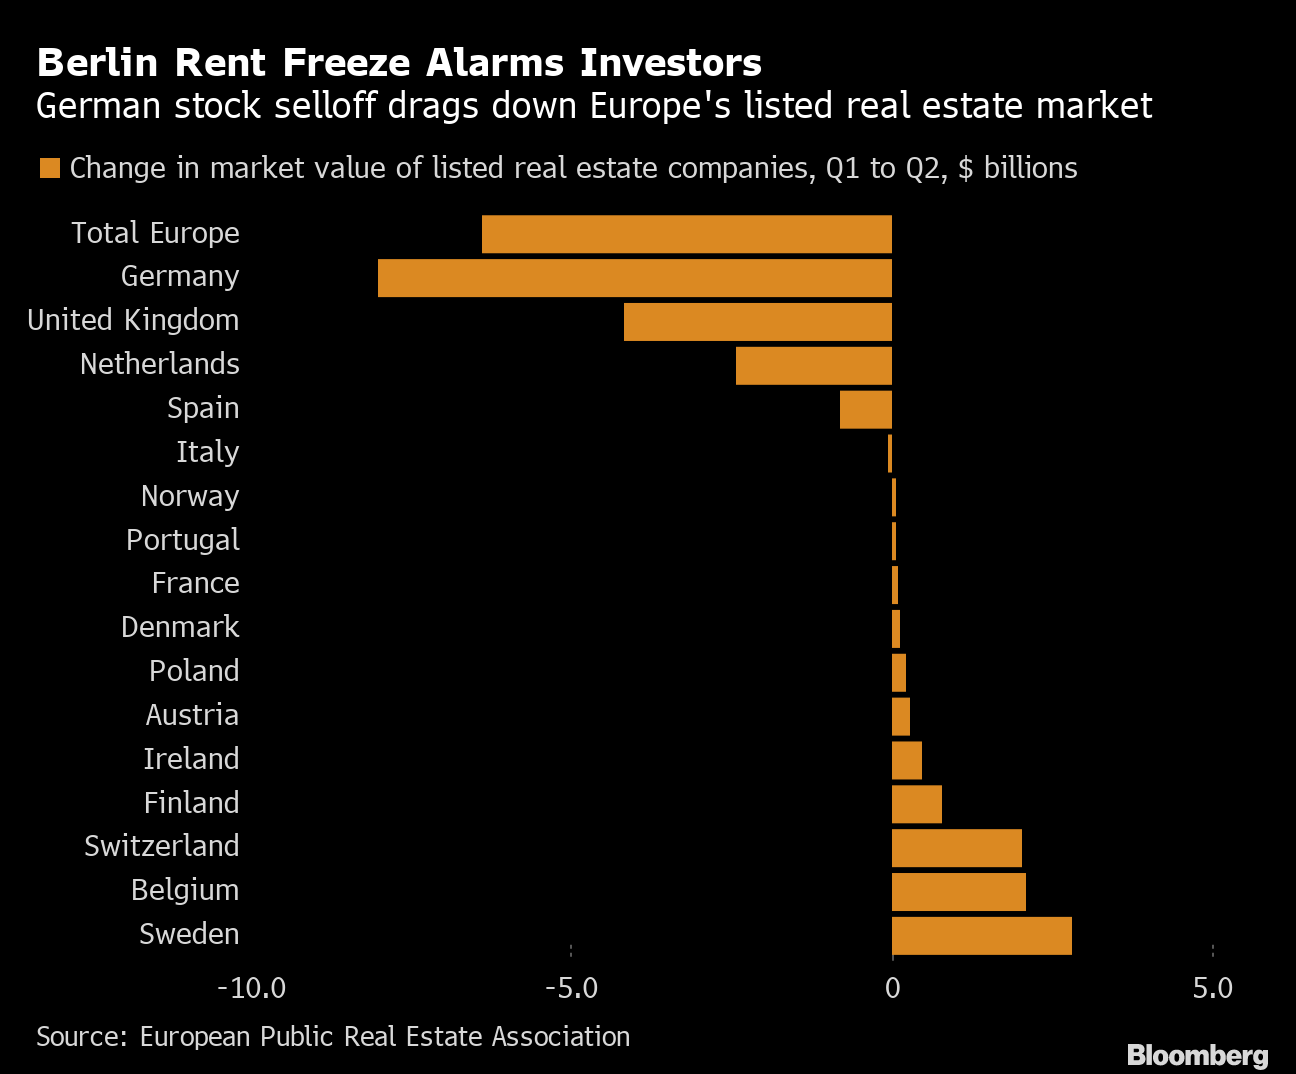 Berlin Rent Freeze Gives Real Estate Stock Investors Cold Feet